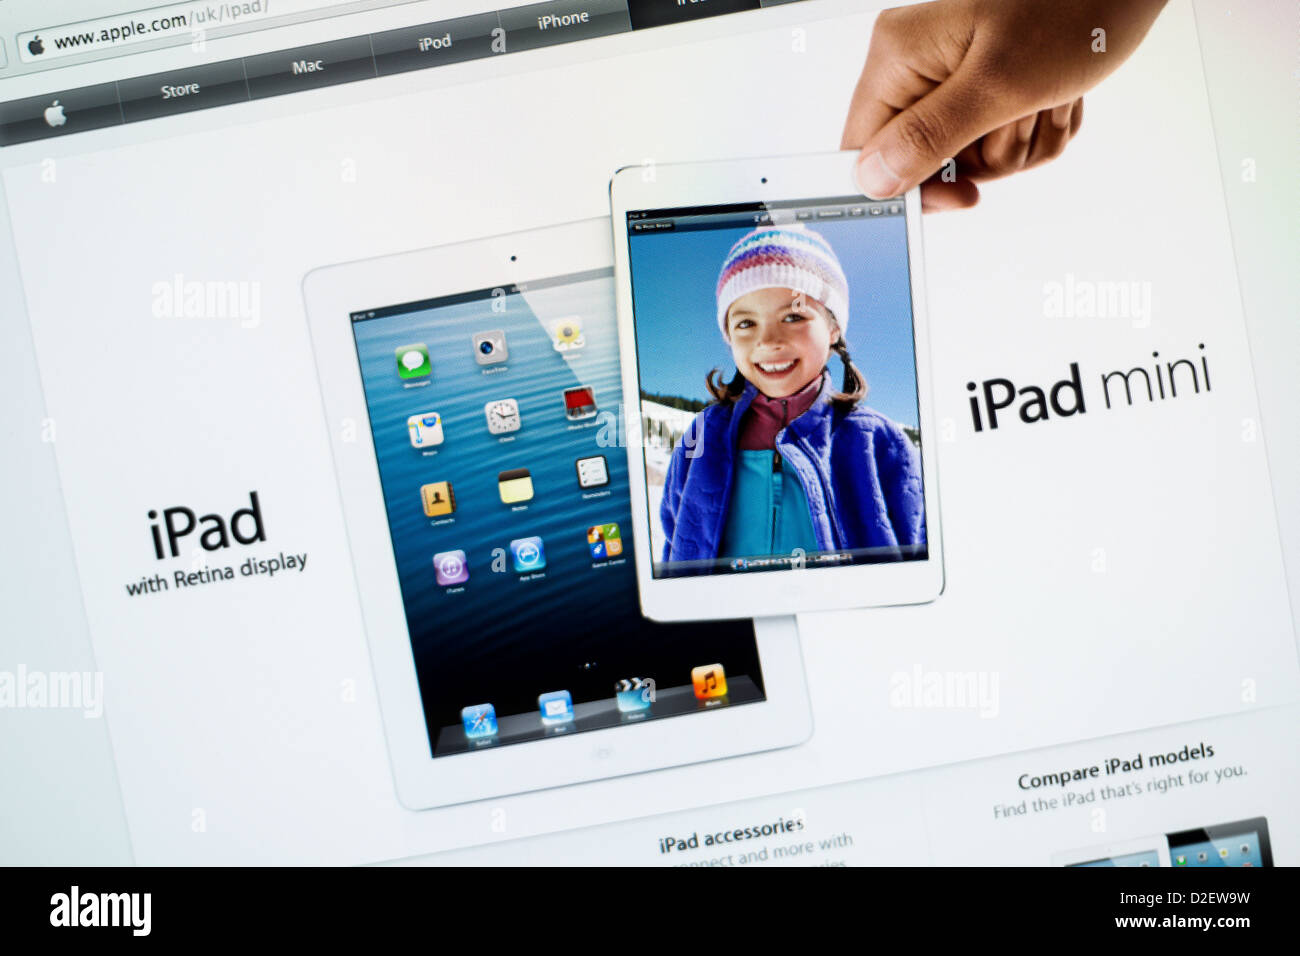 Apple iPad Mini site close up Photo Stock